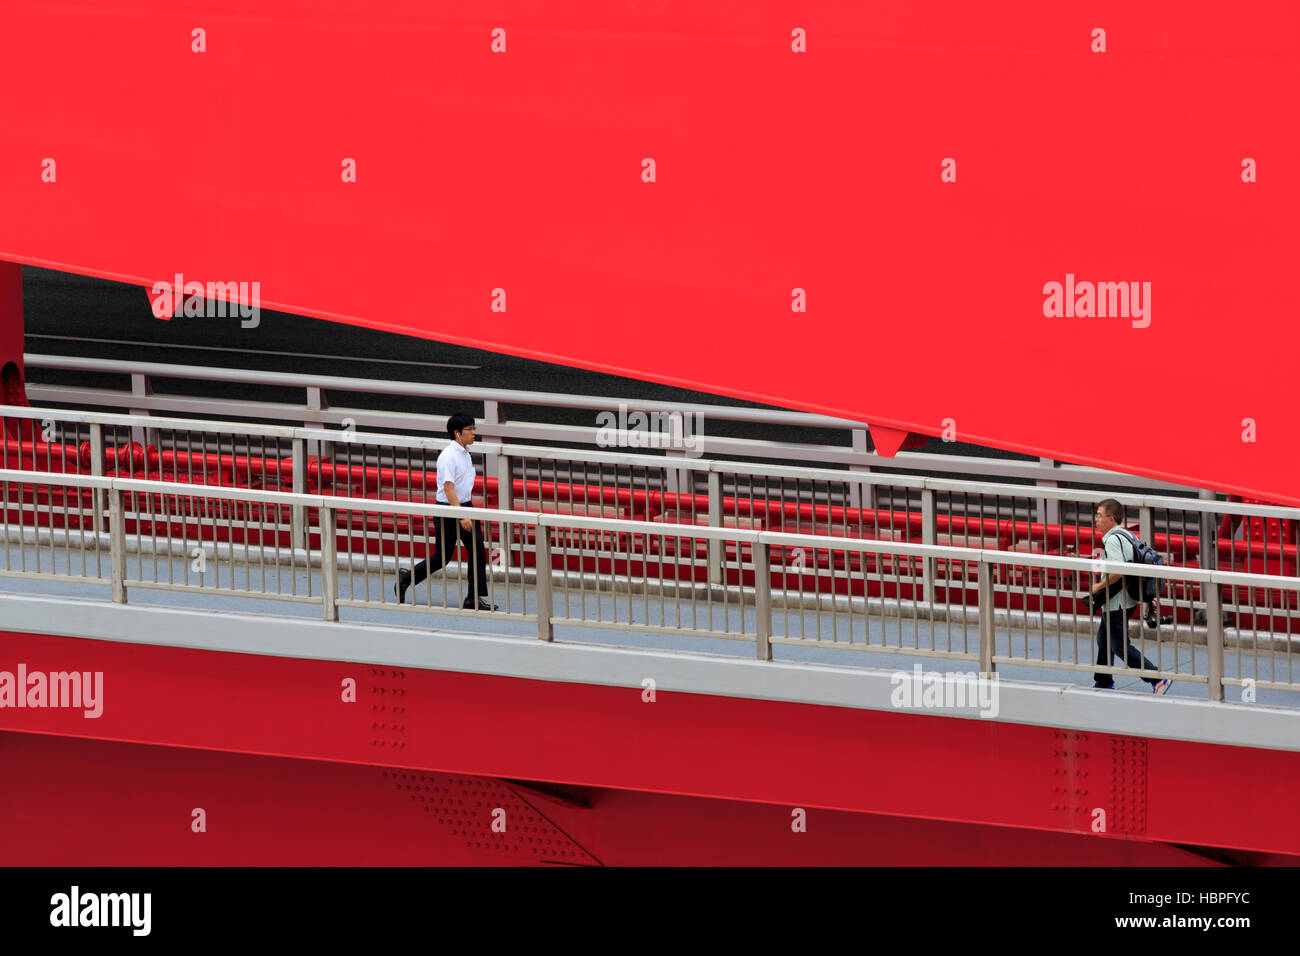 Ohashi Bridge, Kobe City, Honshu Island, Japan, Asia - Stock Image